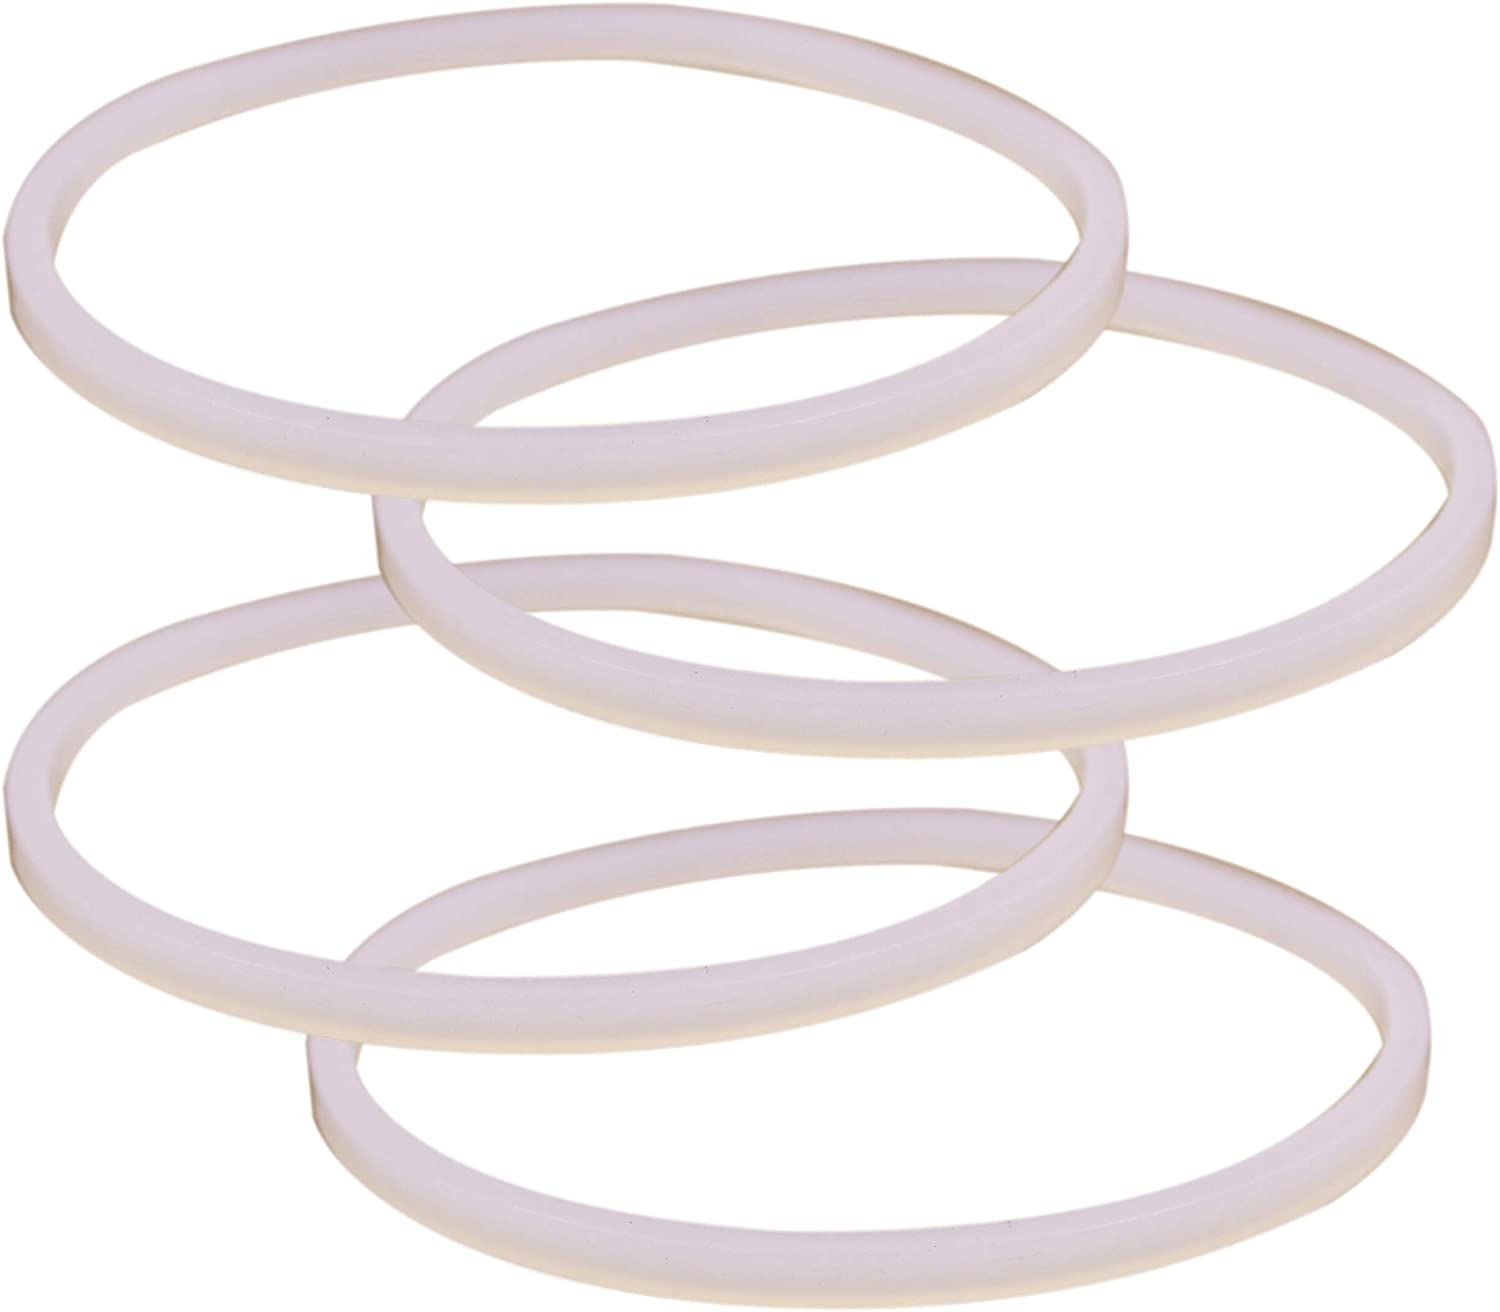 Joyparts 4 Pcs Replacement Parts Rubber Gasket Sealing White O-Ring for Ninja Blender (4pcs 3.23inch)